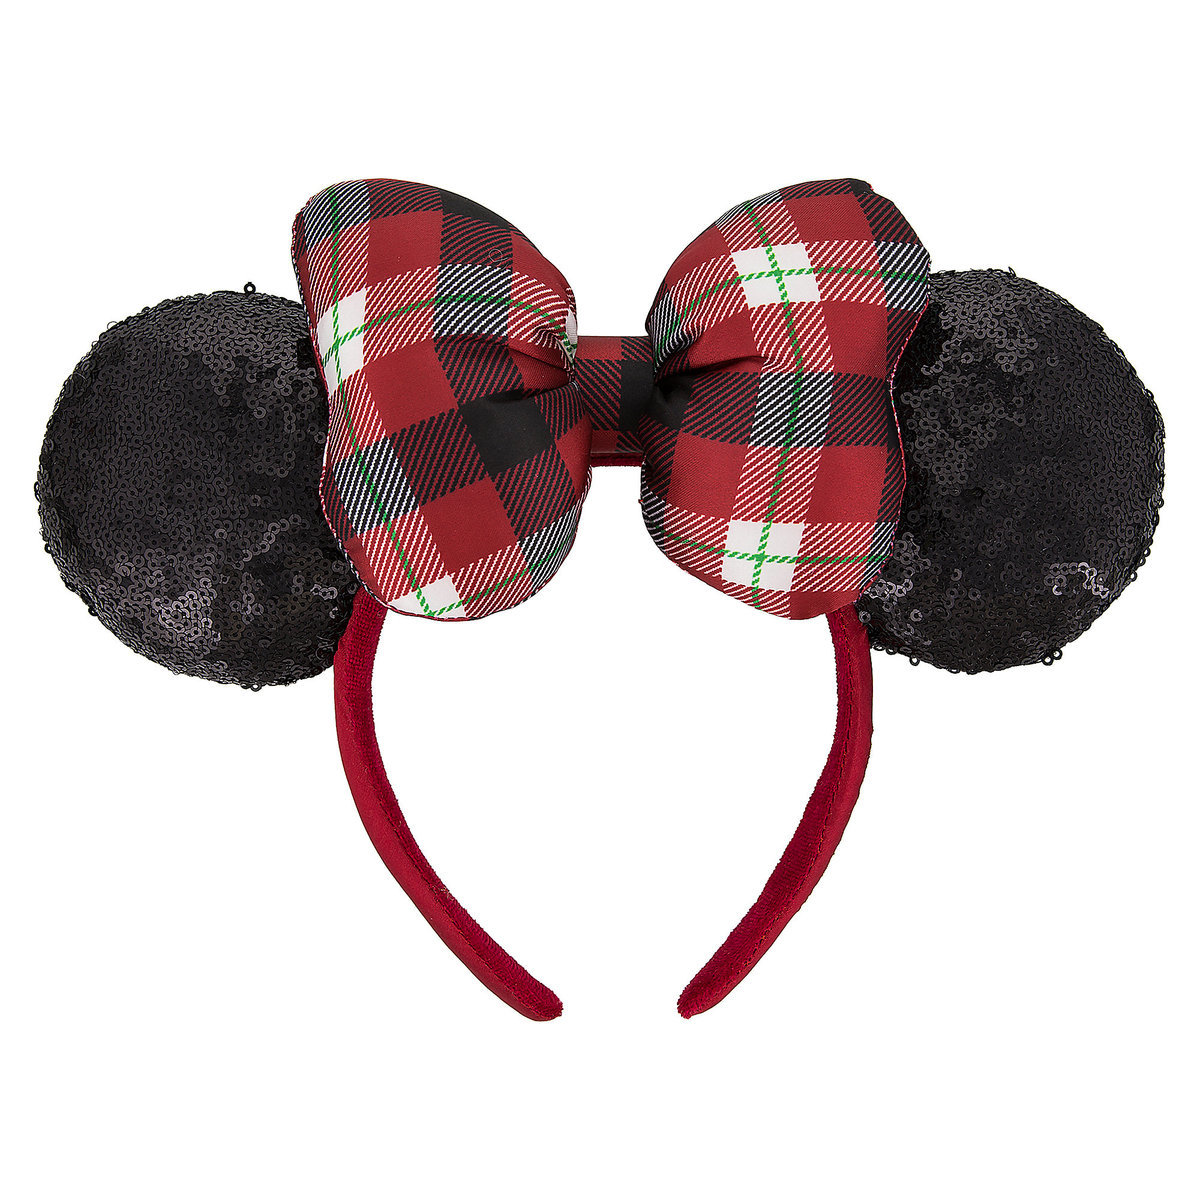 b4347b18cea Product Image of Minnie Mouse Holiday Ears Headband for Adults   1